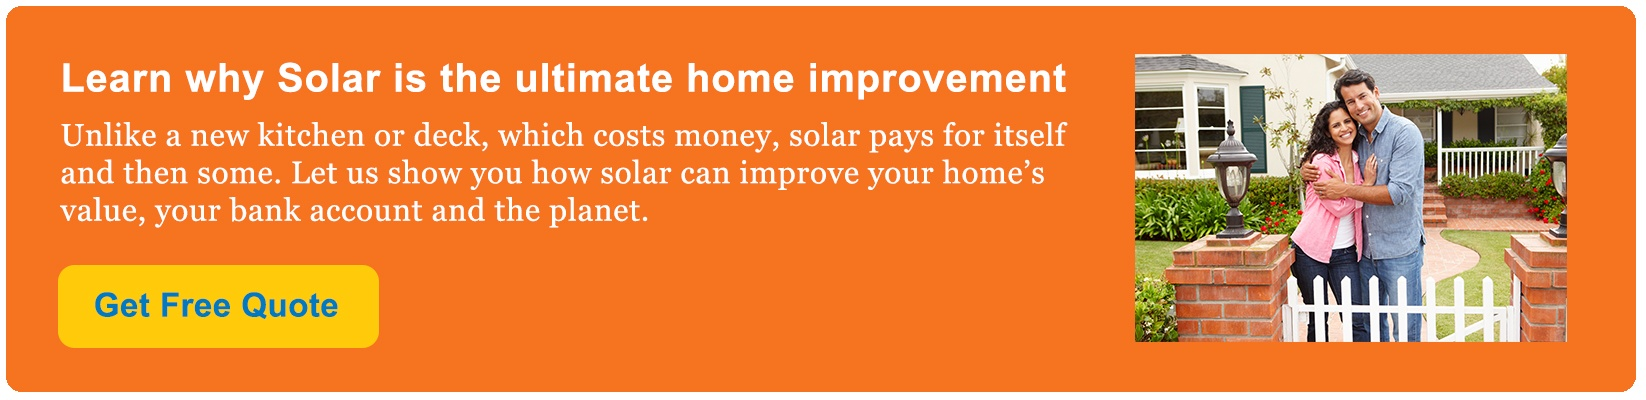 Learn why solar is the ultimate home improvement. Let us show you how solar can improve your home's value, your bank account and the planet.